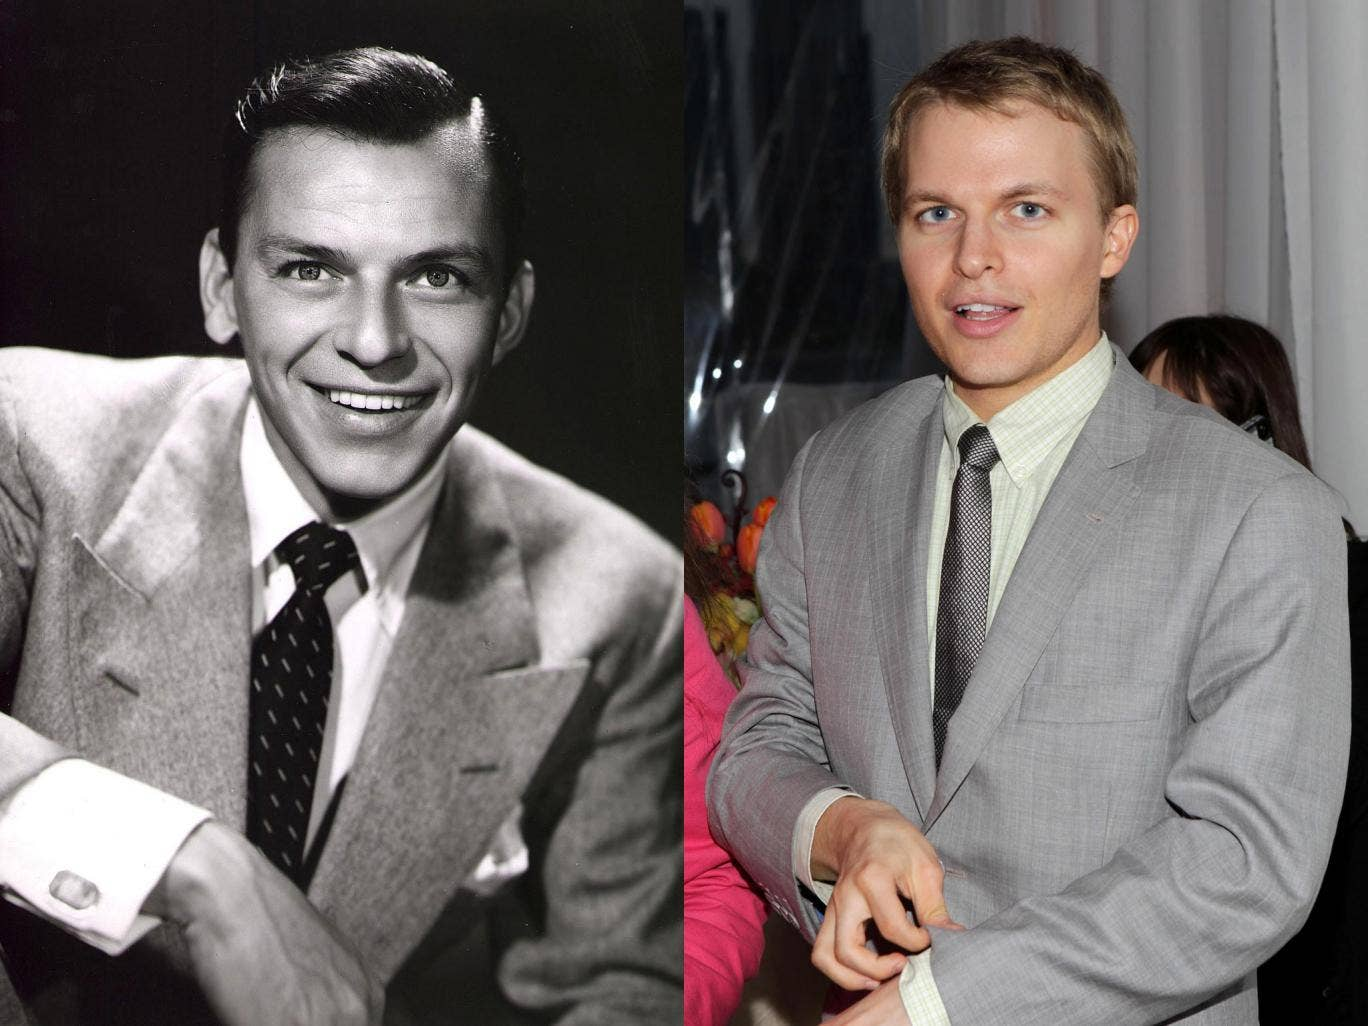 Frank Sinatra (left) could be the father of Mia Farrow's son Ronan (right)